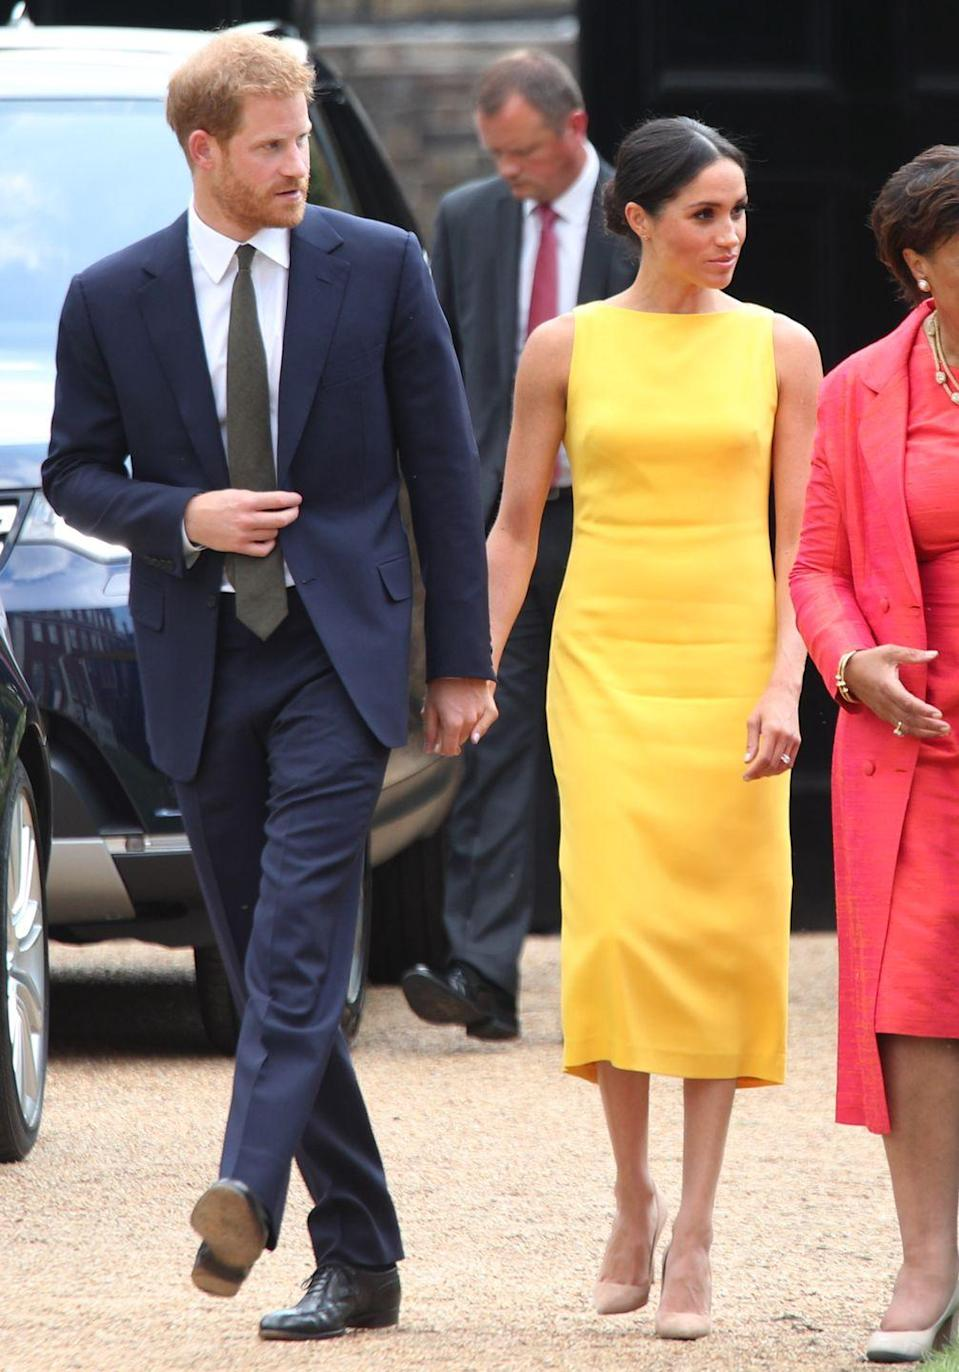 "<p>The royals showed subtle PDA while attending <a href=""https://www.townandcountrymag.com/style/fashion-trends/a22062433/meghan-markle-brandon-maxwell-dress-commonwealth-youth-challenge-reception/"" rel=""nofollow noopener"" target=""_blank"" data-ylk=""slk:the Your Commonwealth Youth Challenge reception"" class=""link rapid-noclick-resp"">the Your Commonwealth Youth Challenge reception</a> in London on July 5. </p>"